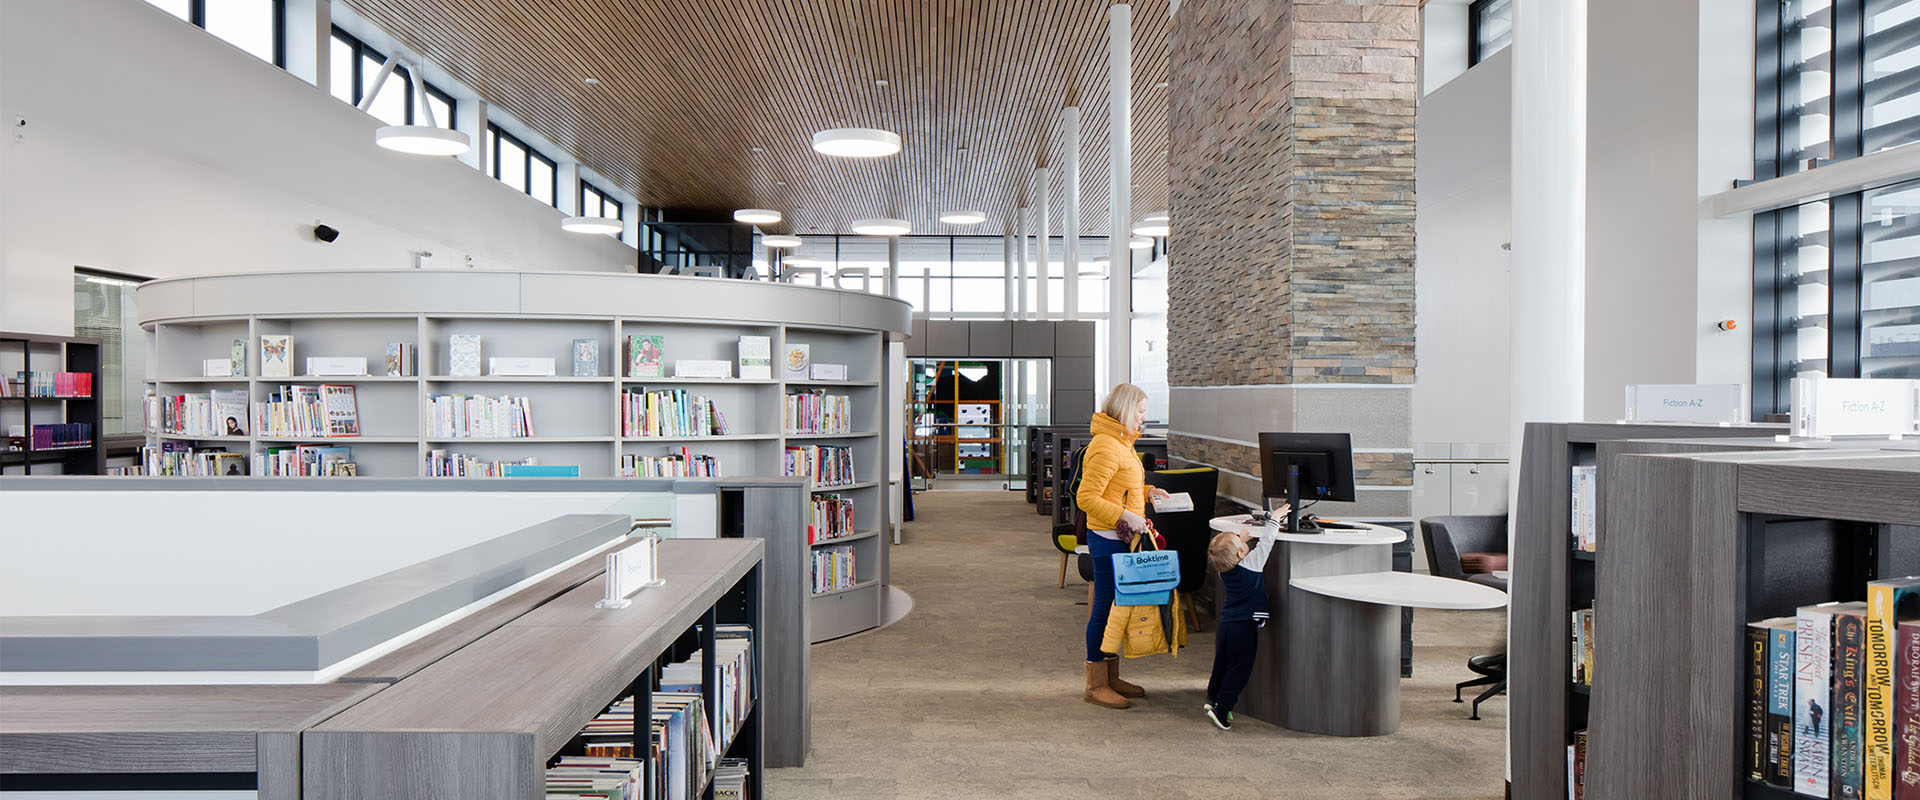 An image for Public libraries